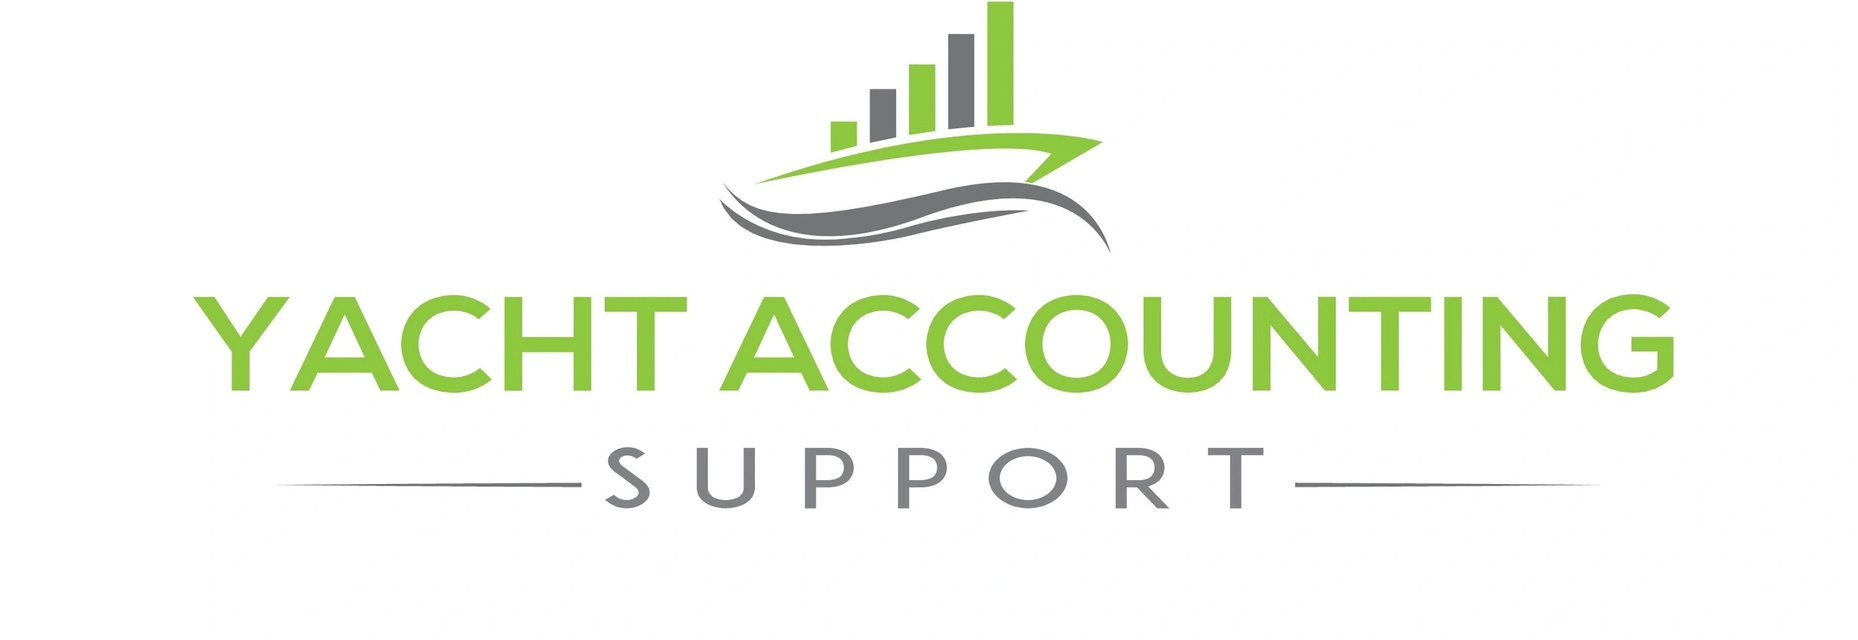 YACHT ACCOUNTING SUPPORT